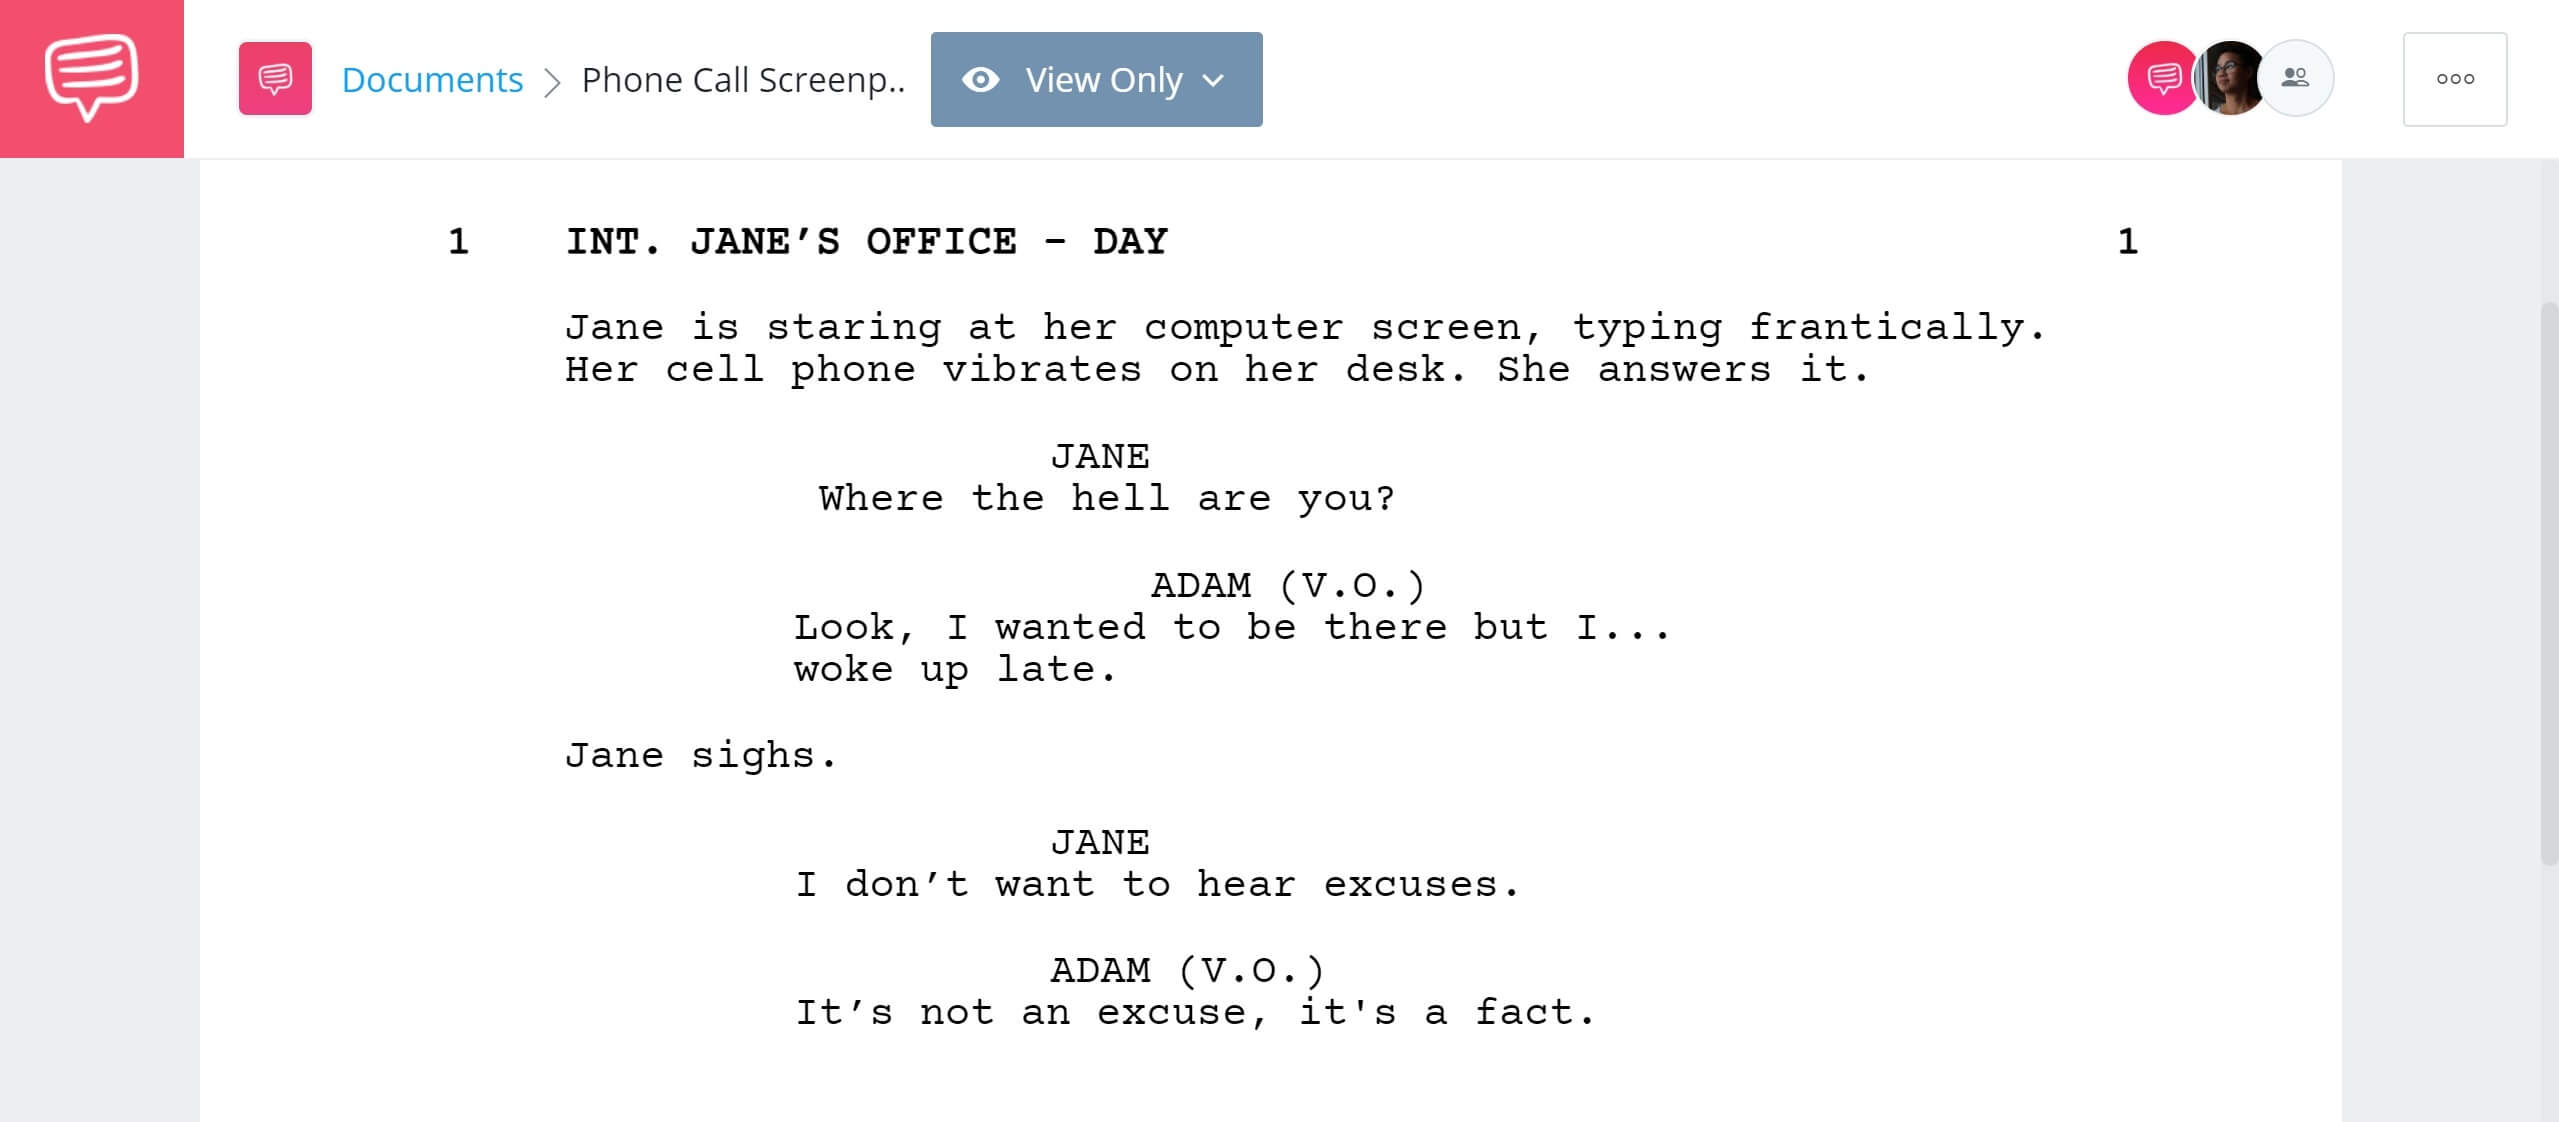 How to Write Telephone Conversation in Screenplay - Voiceover Example - StudioBinder Screenwriting Software